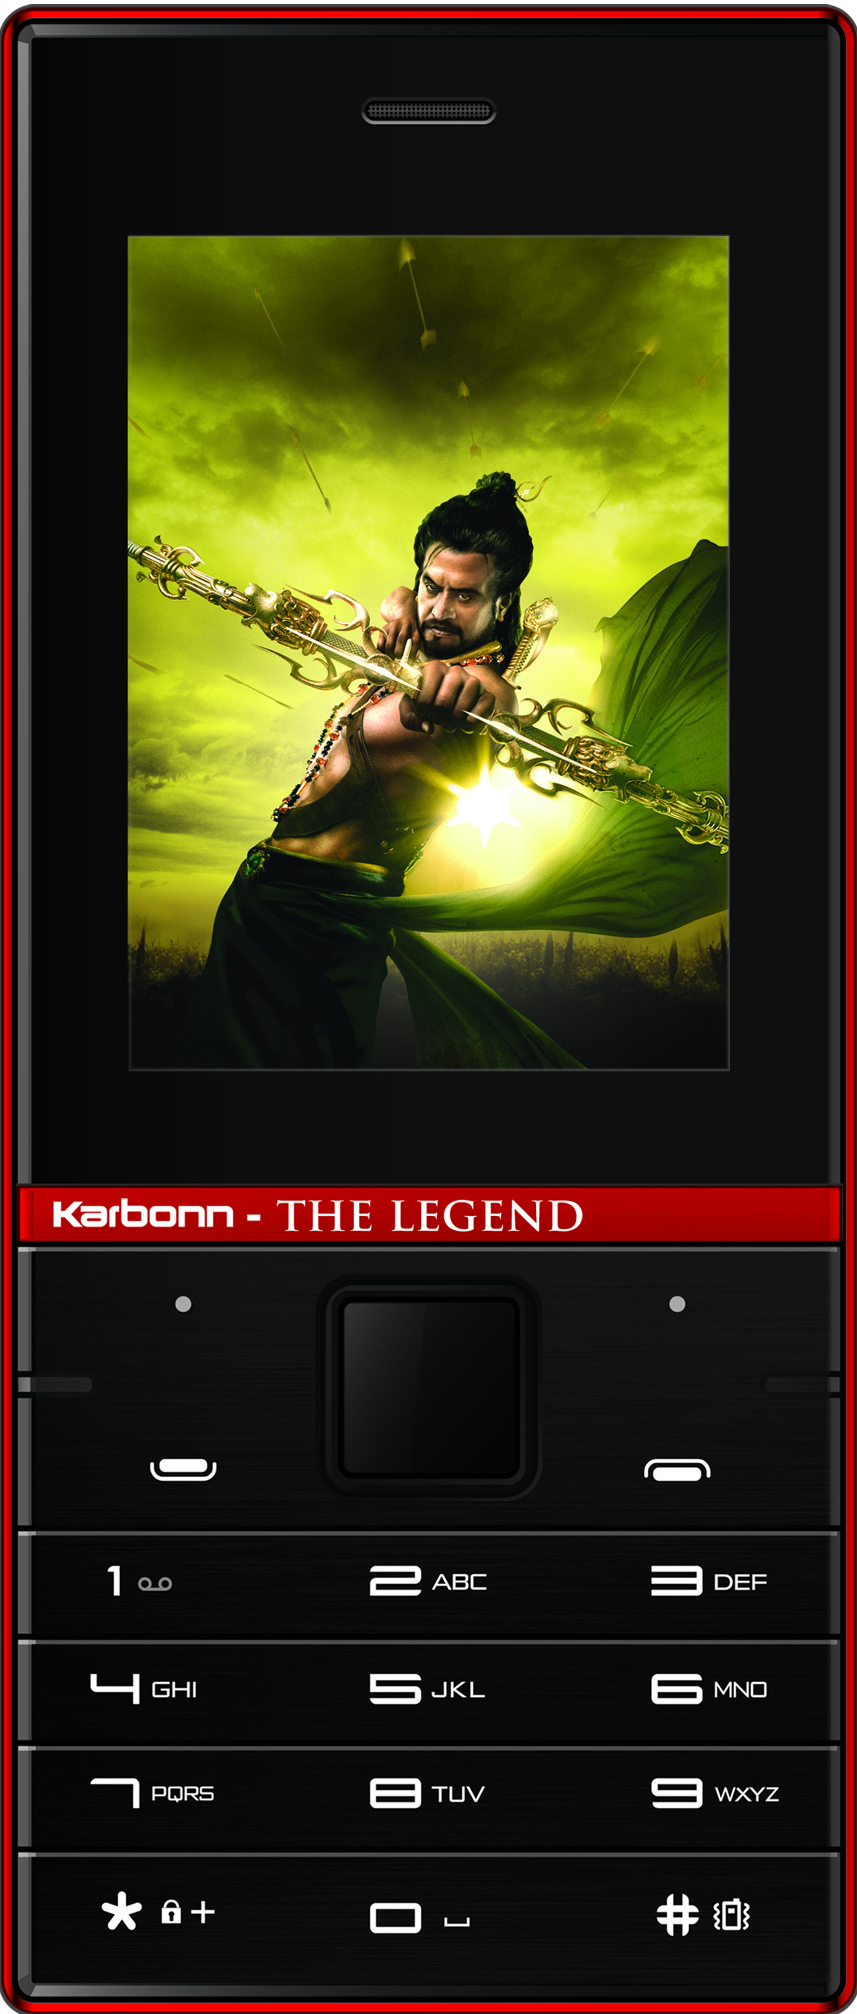 Karbonn Kochadaiiyaan The Legend 2.4(Black and Red)